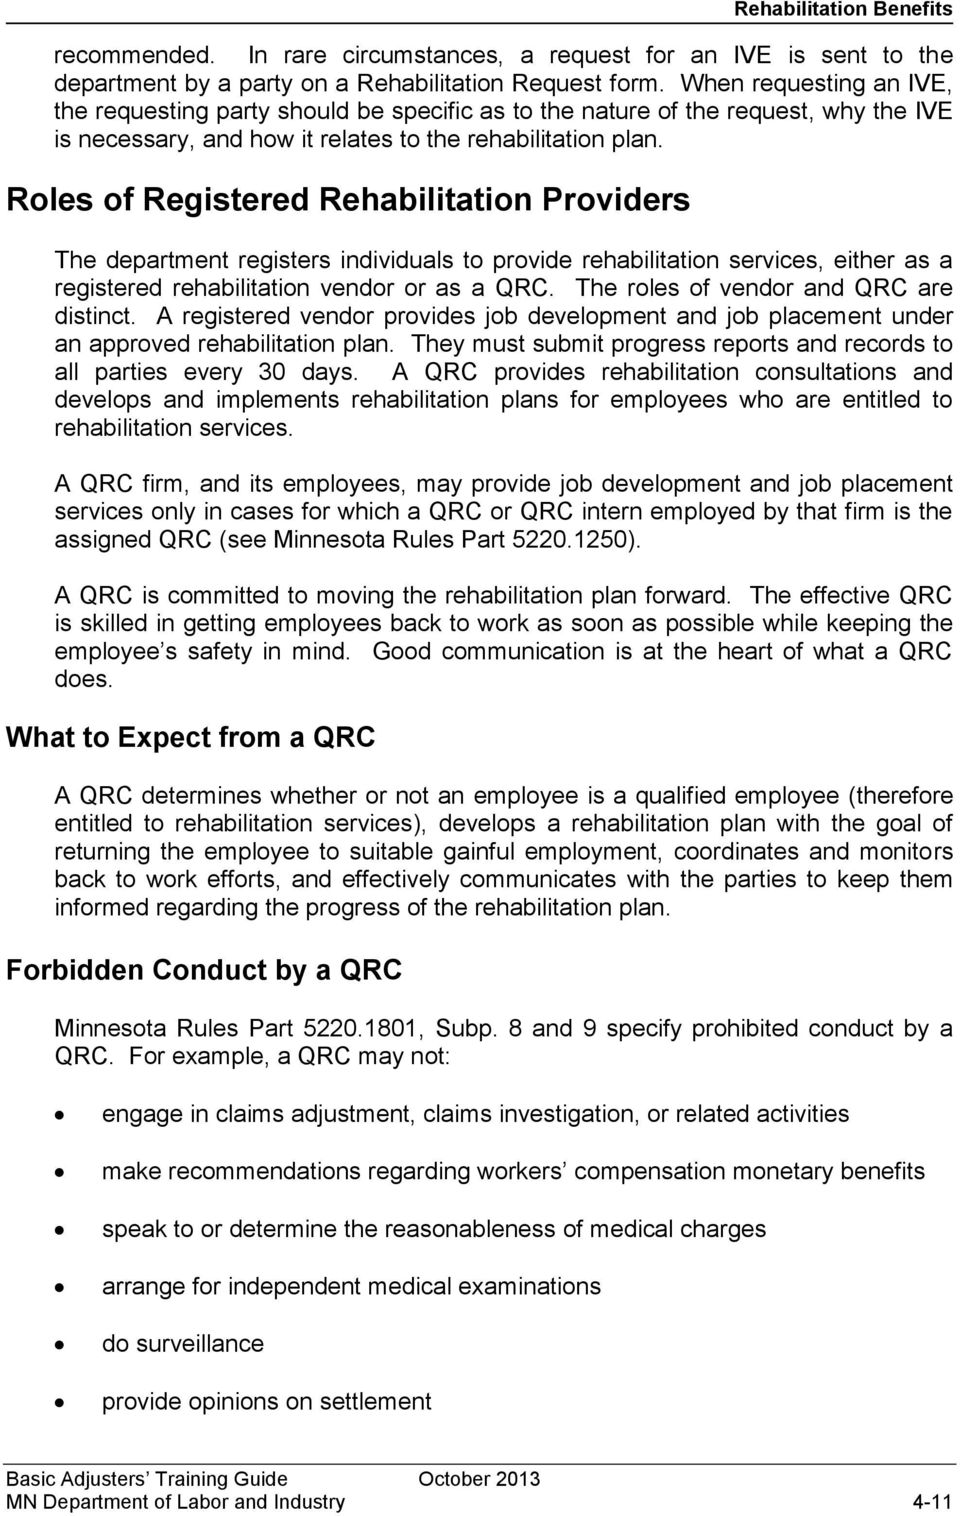 Roles of Registered Rehabilitation Providers The department registers individuals to provide rehabilitation services, either as a registered rehabilitation vendor or as a QRC.